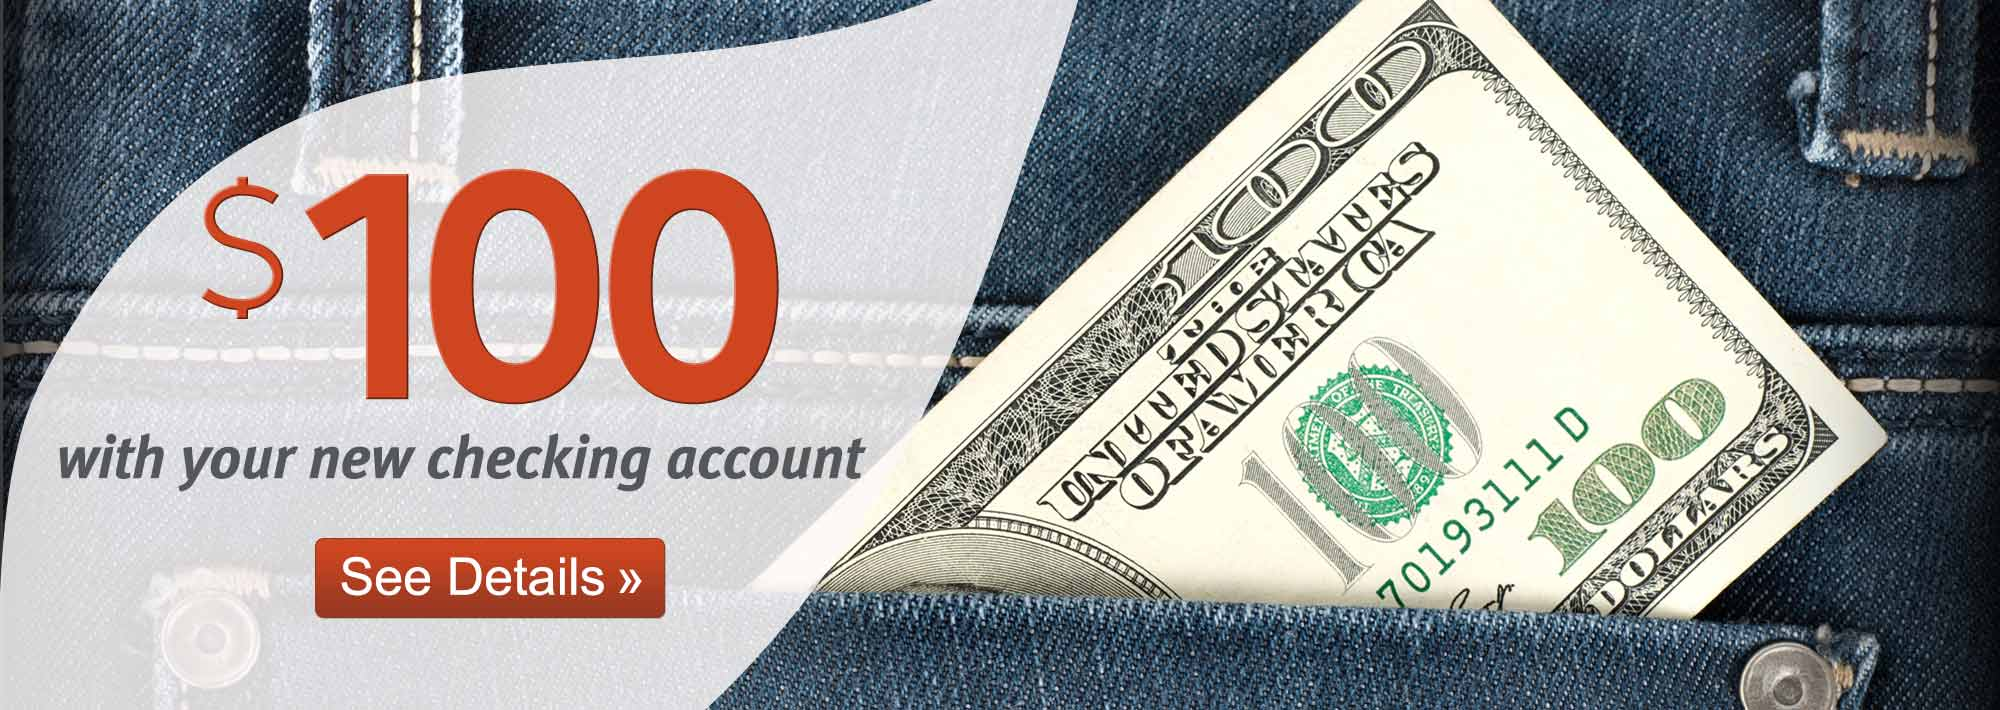 Get $100 with your new checking account. See Details